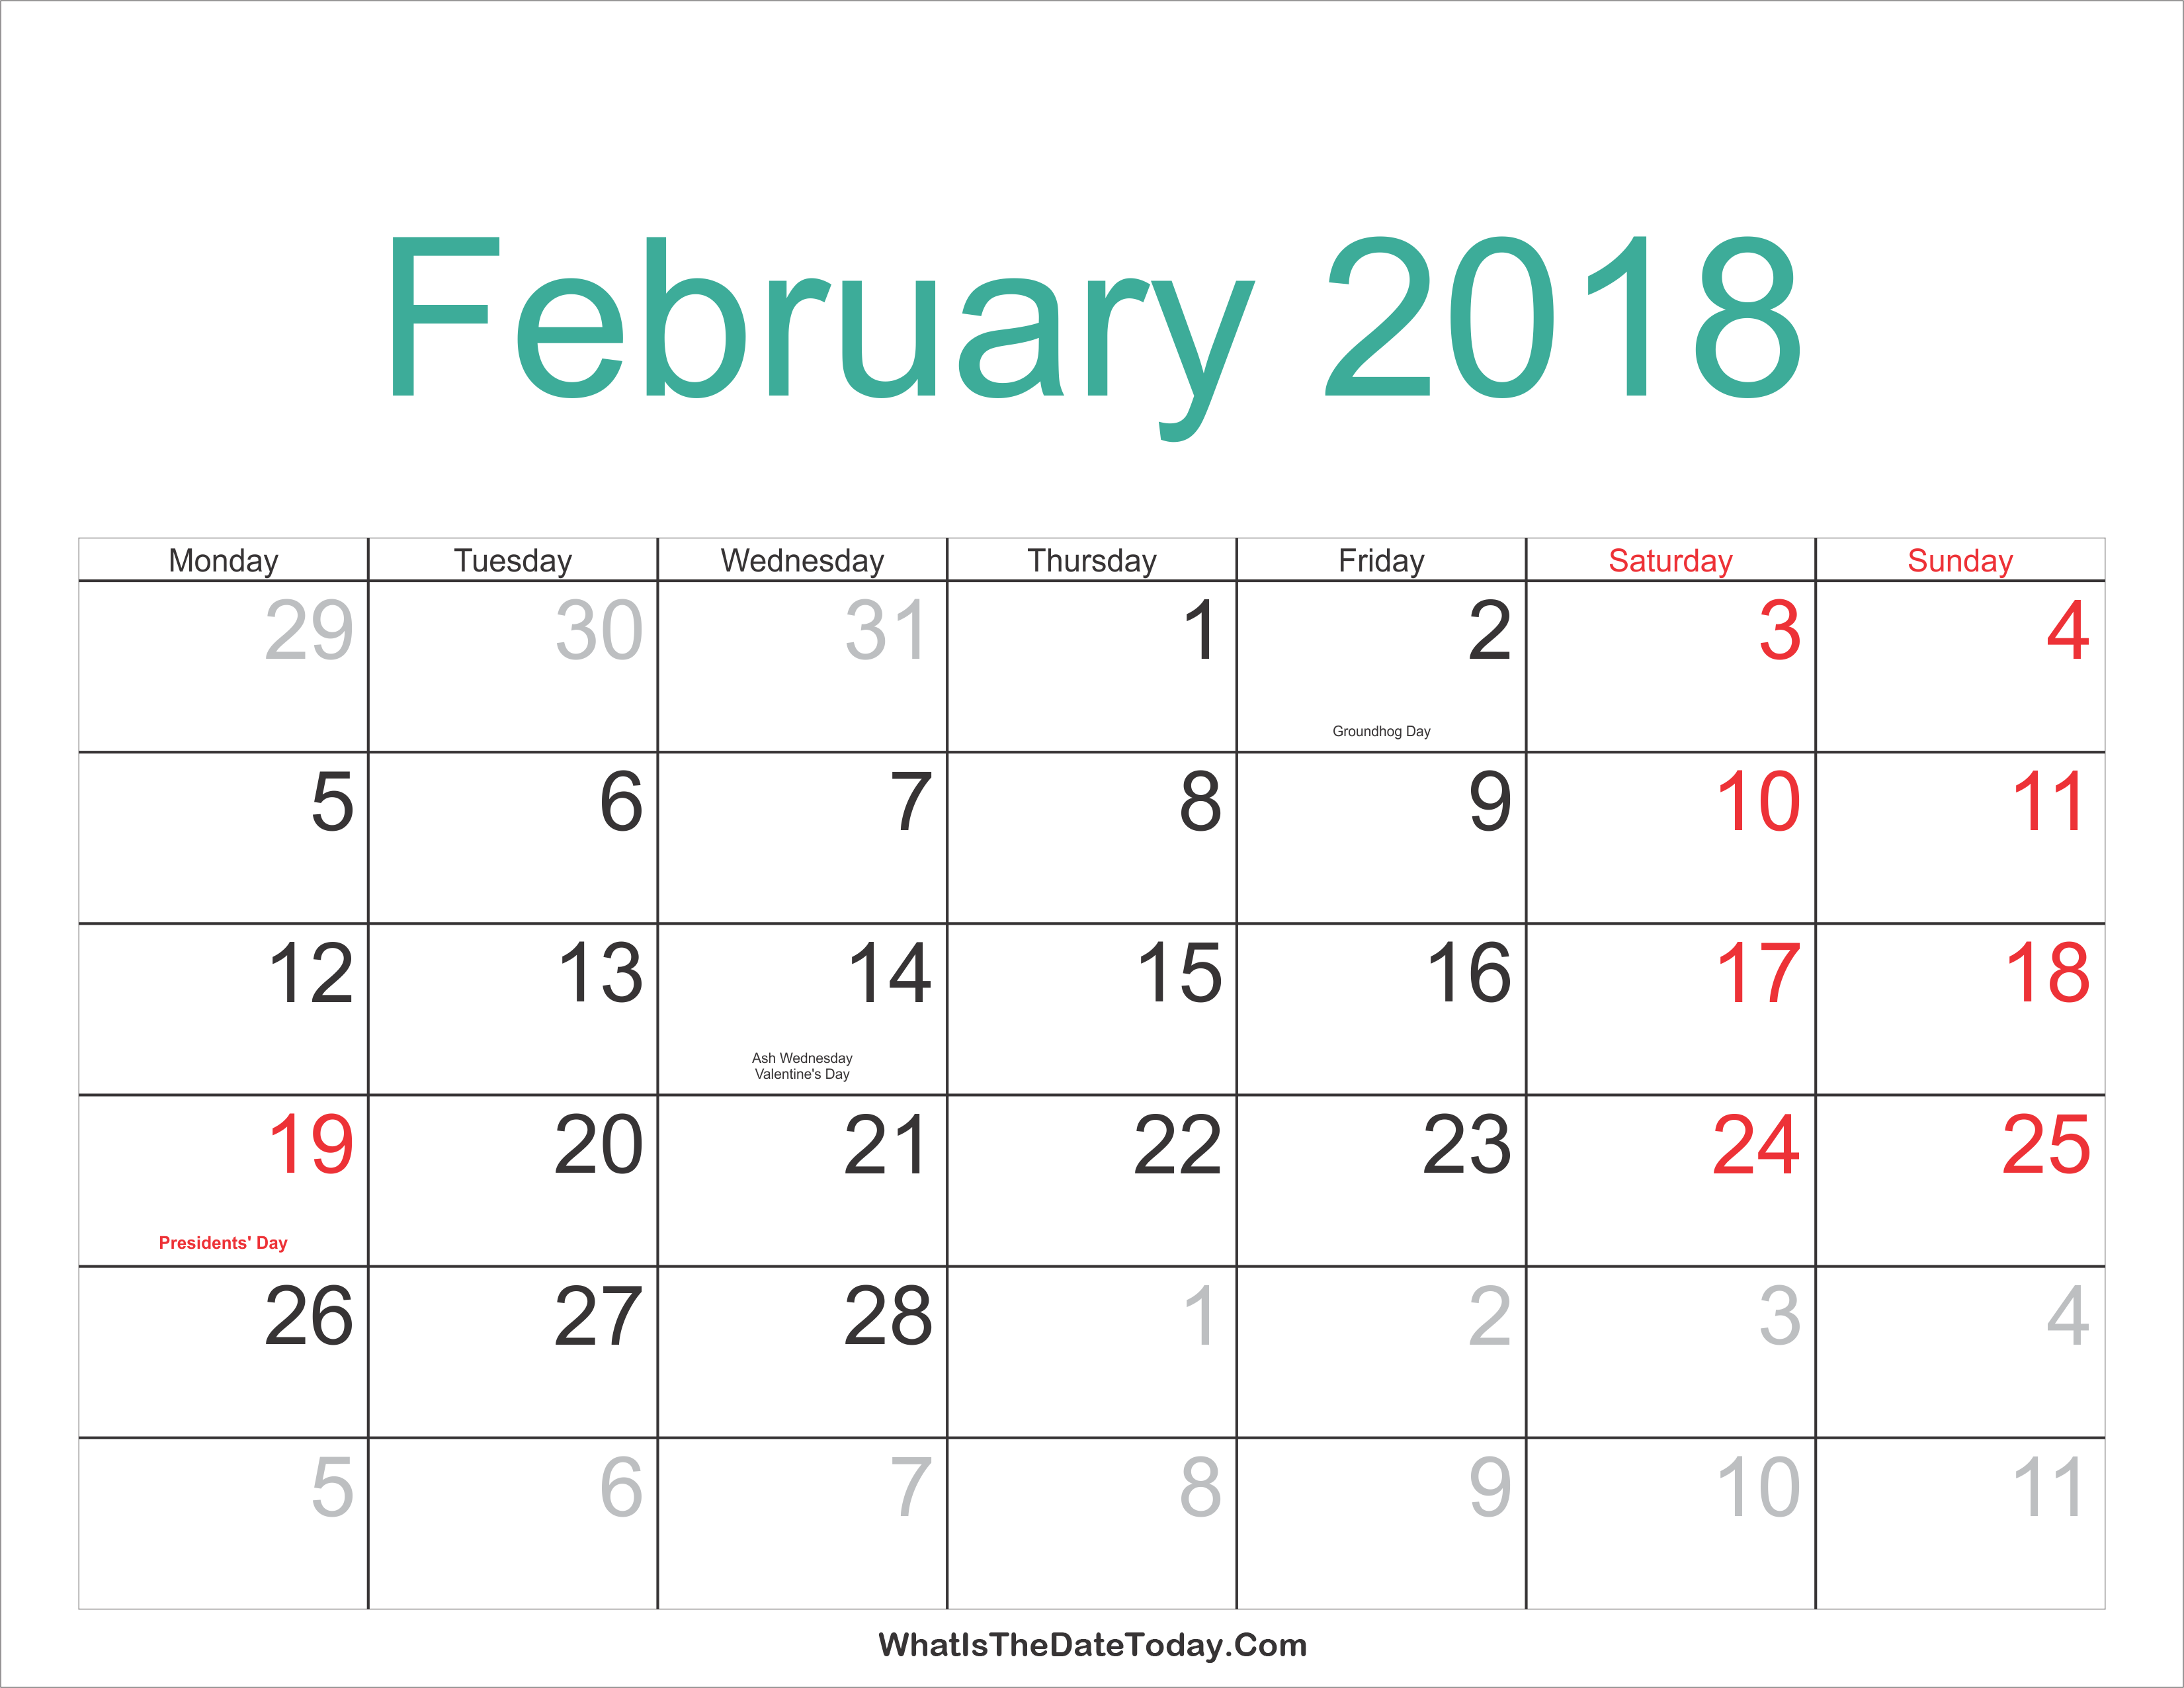 February 2018 Calendar Printable with Holidays ...